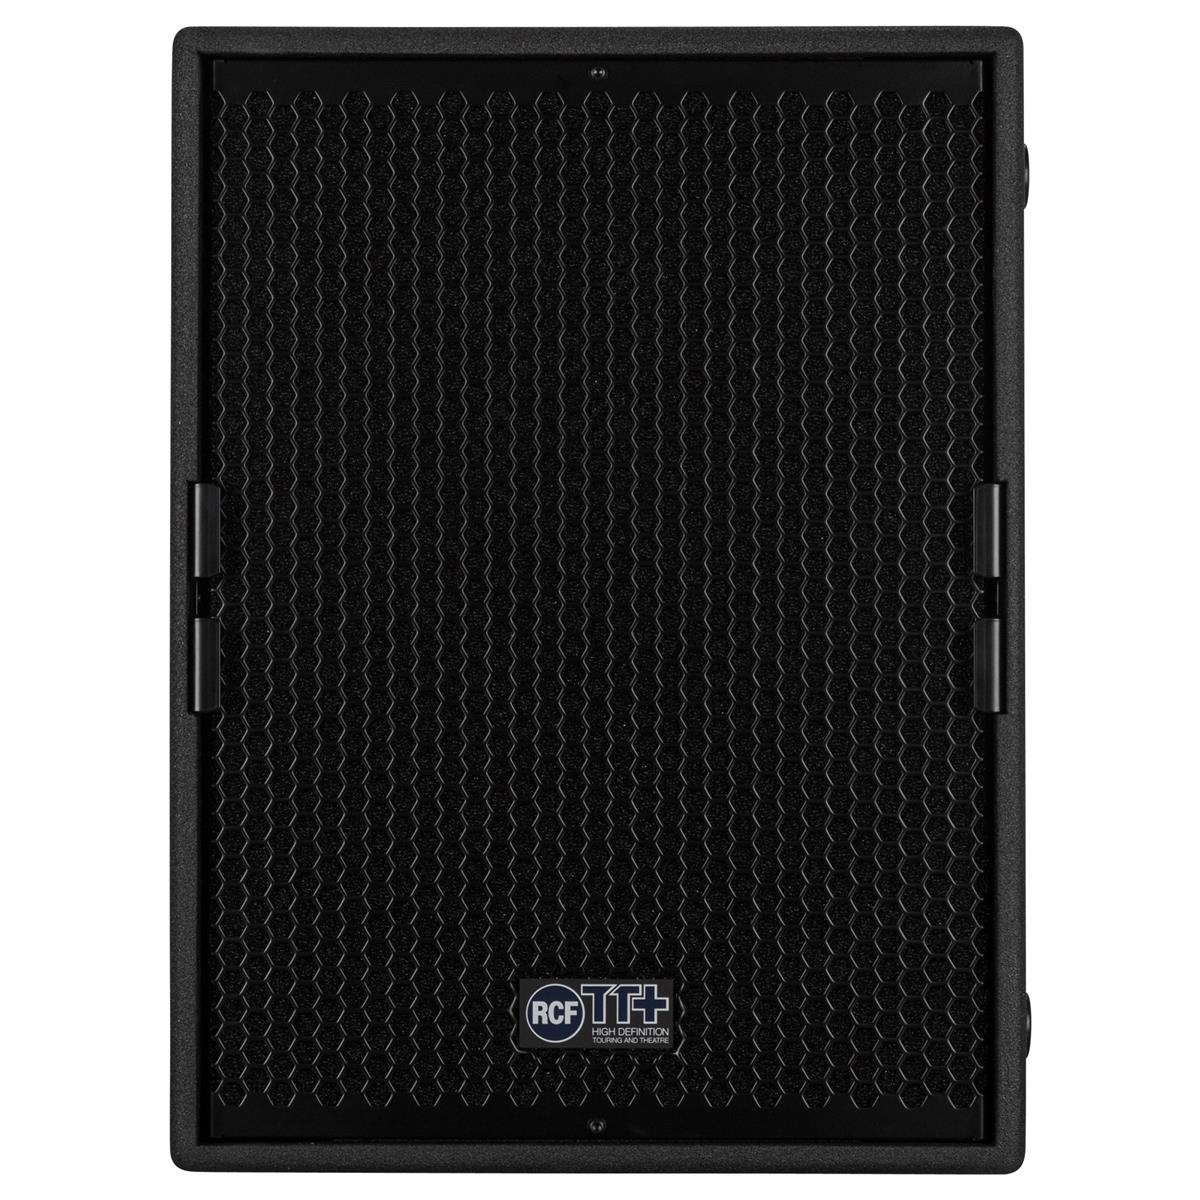 RCF 1100 W RMS, 15in active high power subwoofer